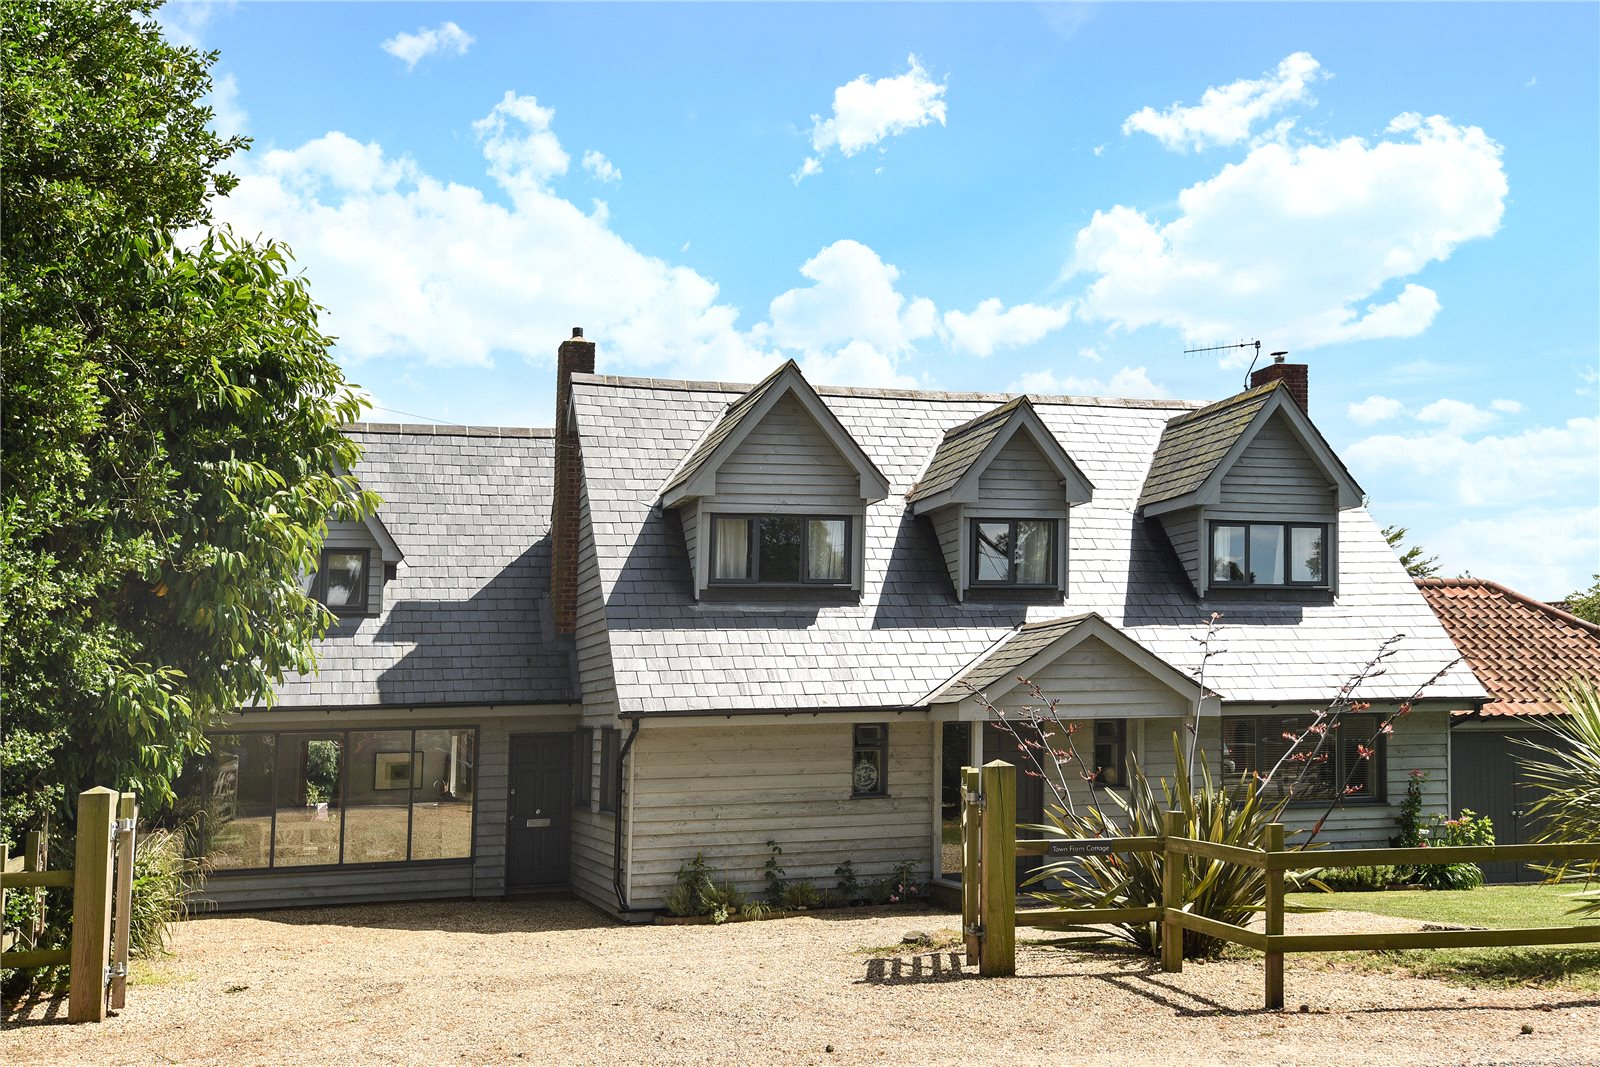 Single Family Home for Sale at Front Street, Orford, Woodbridge, Suffolk, IP12 Woodbridge, England